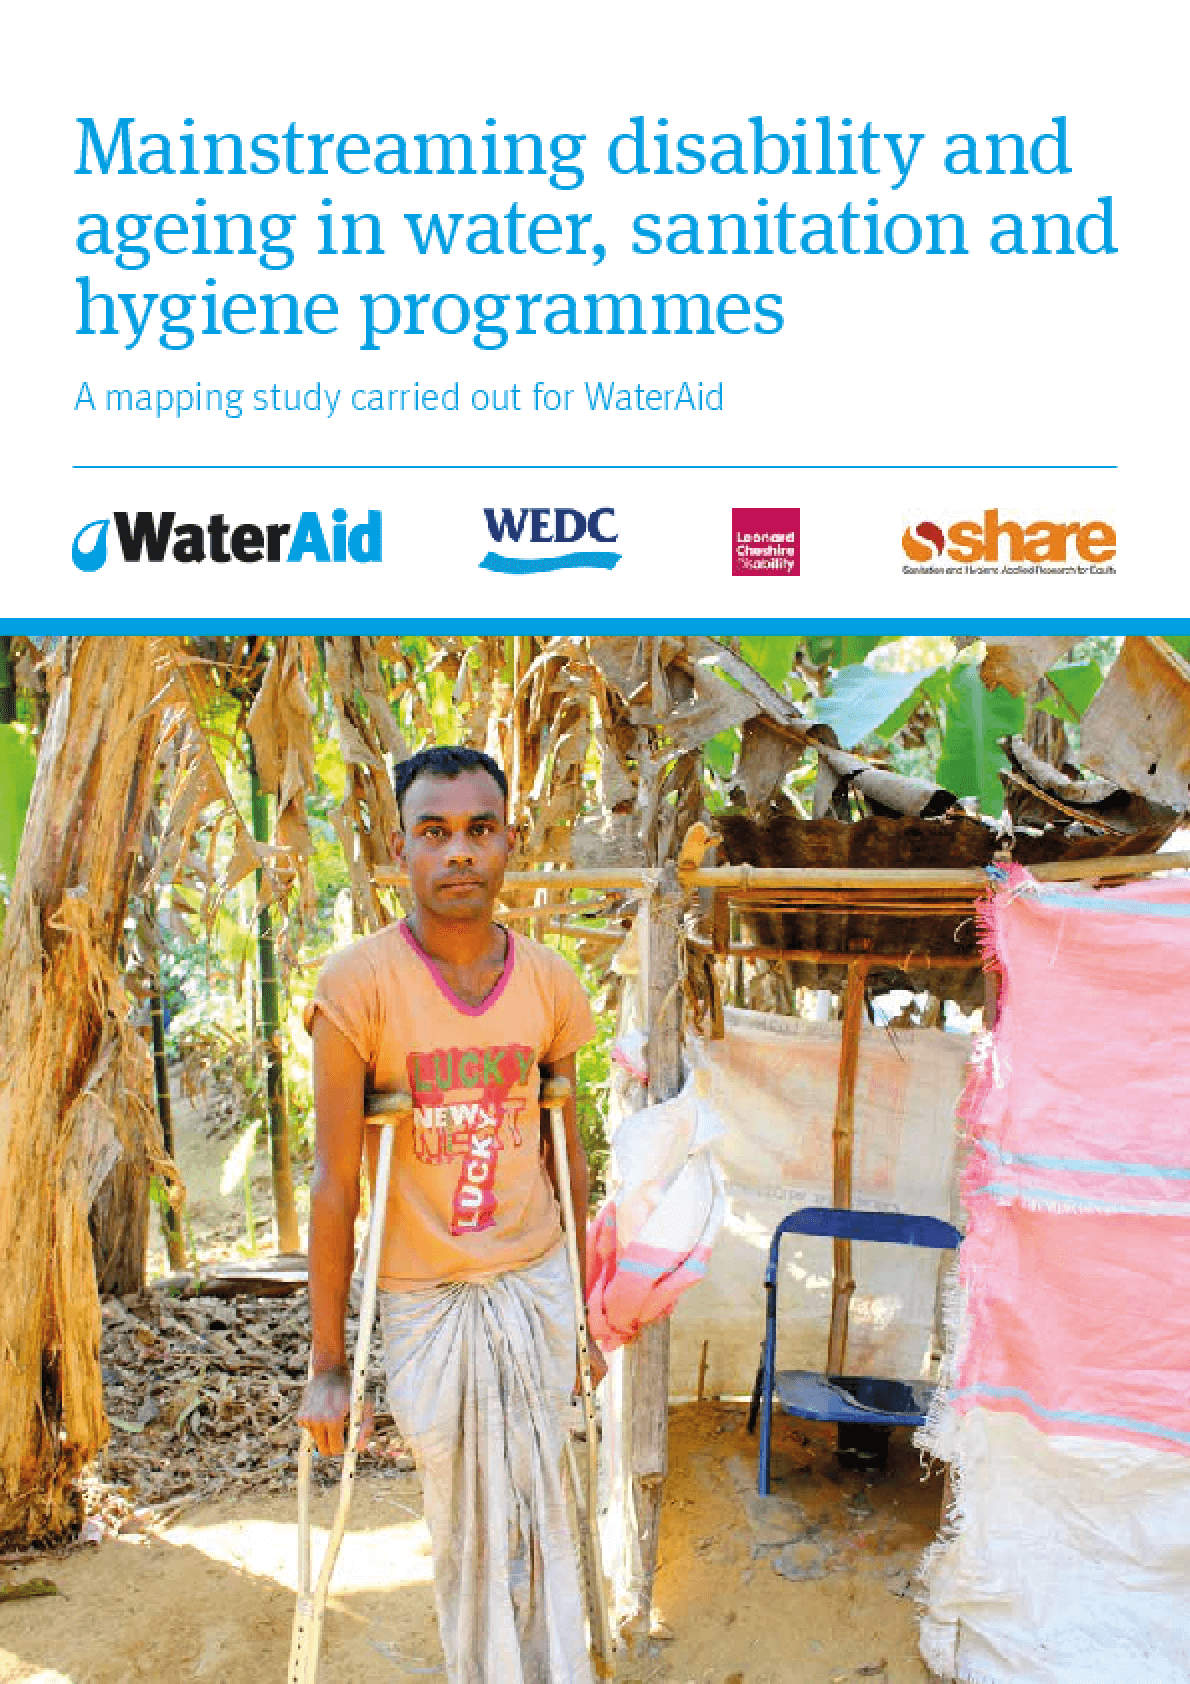 Mainstreaming Disability and Ageing In Water, Sanitation and Hygiene Programmes